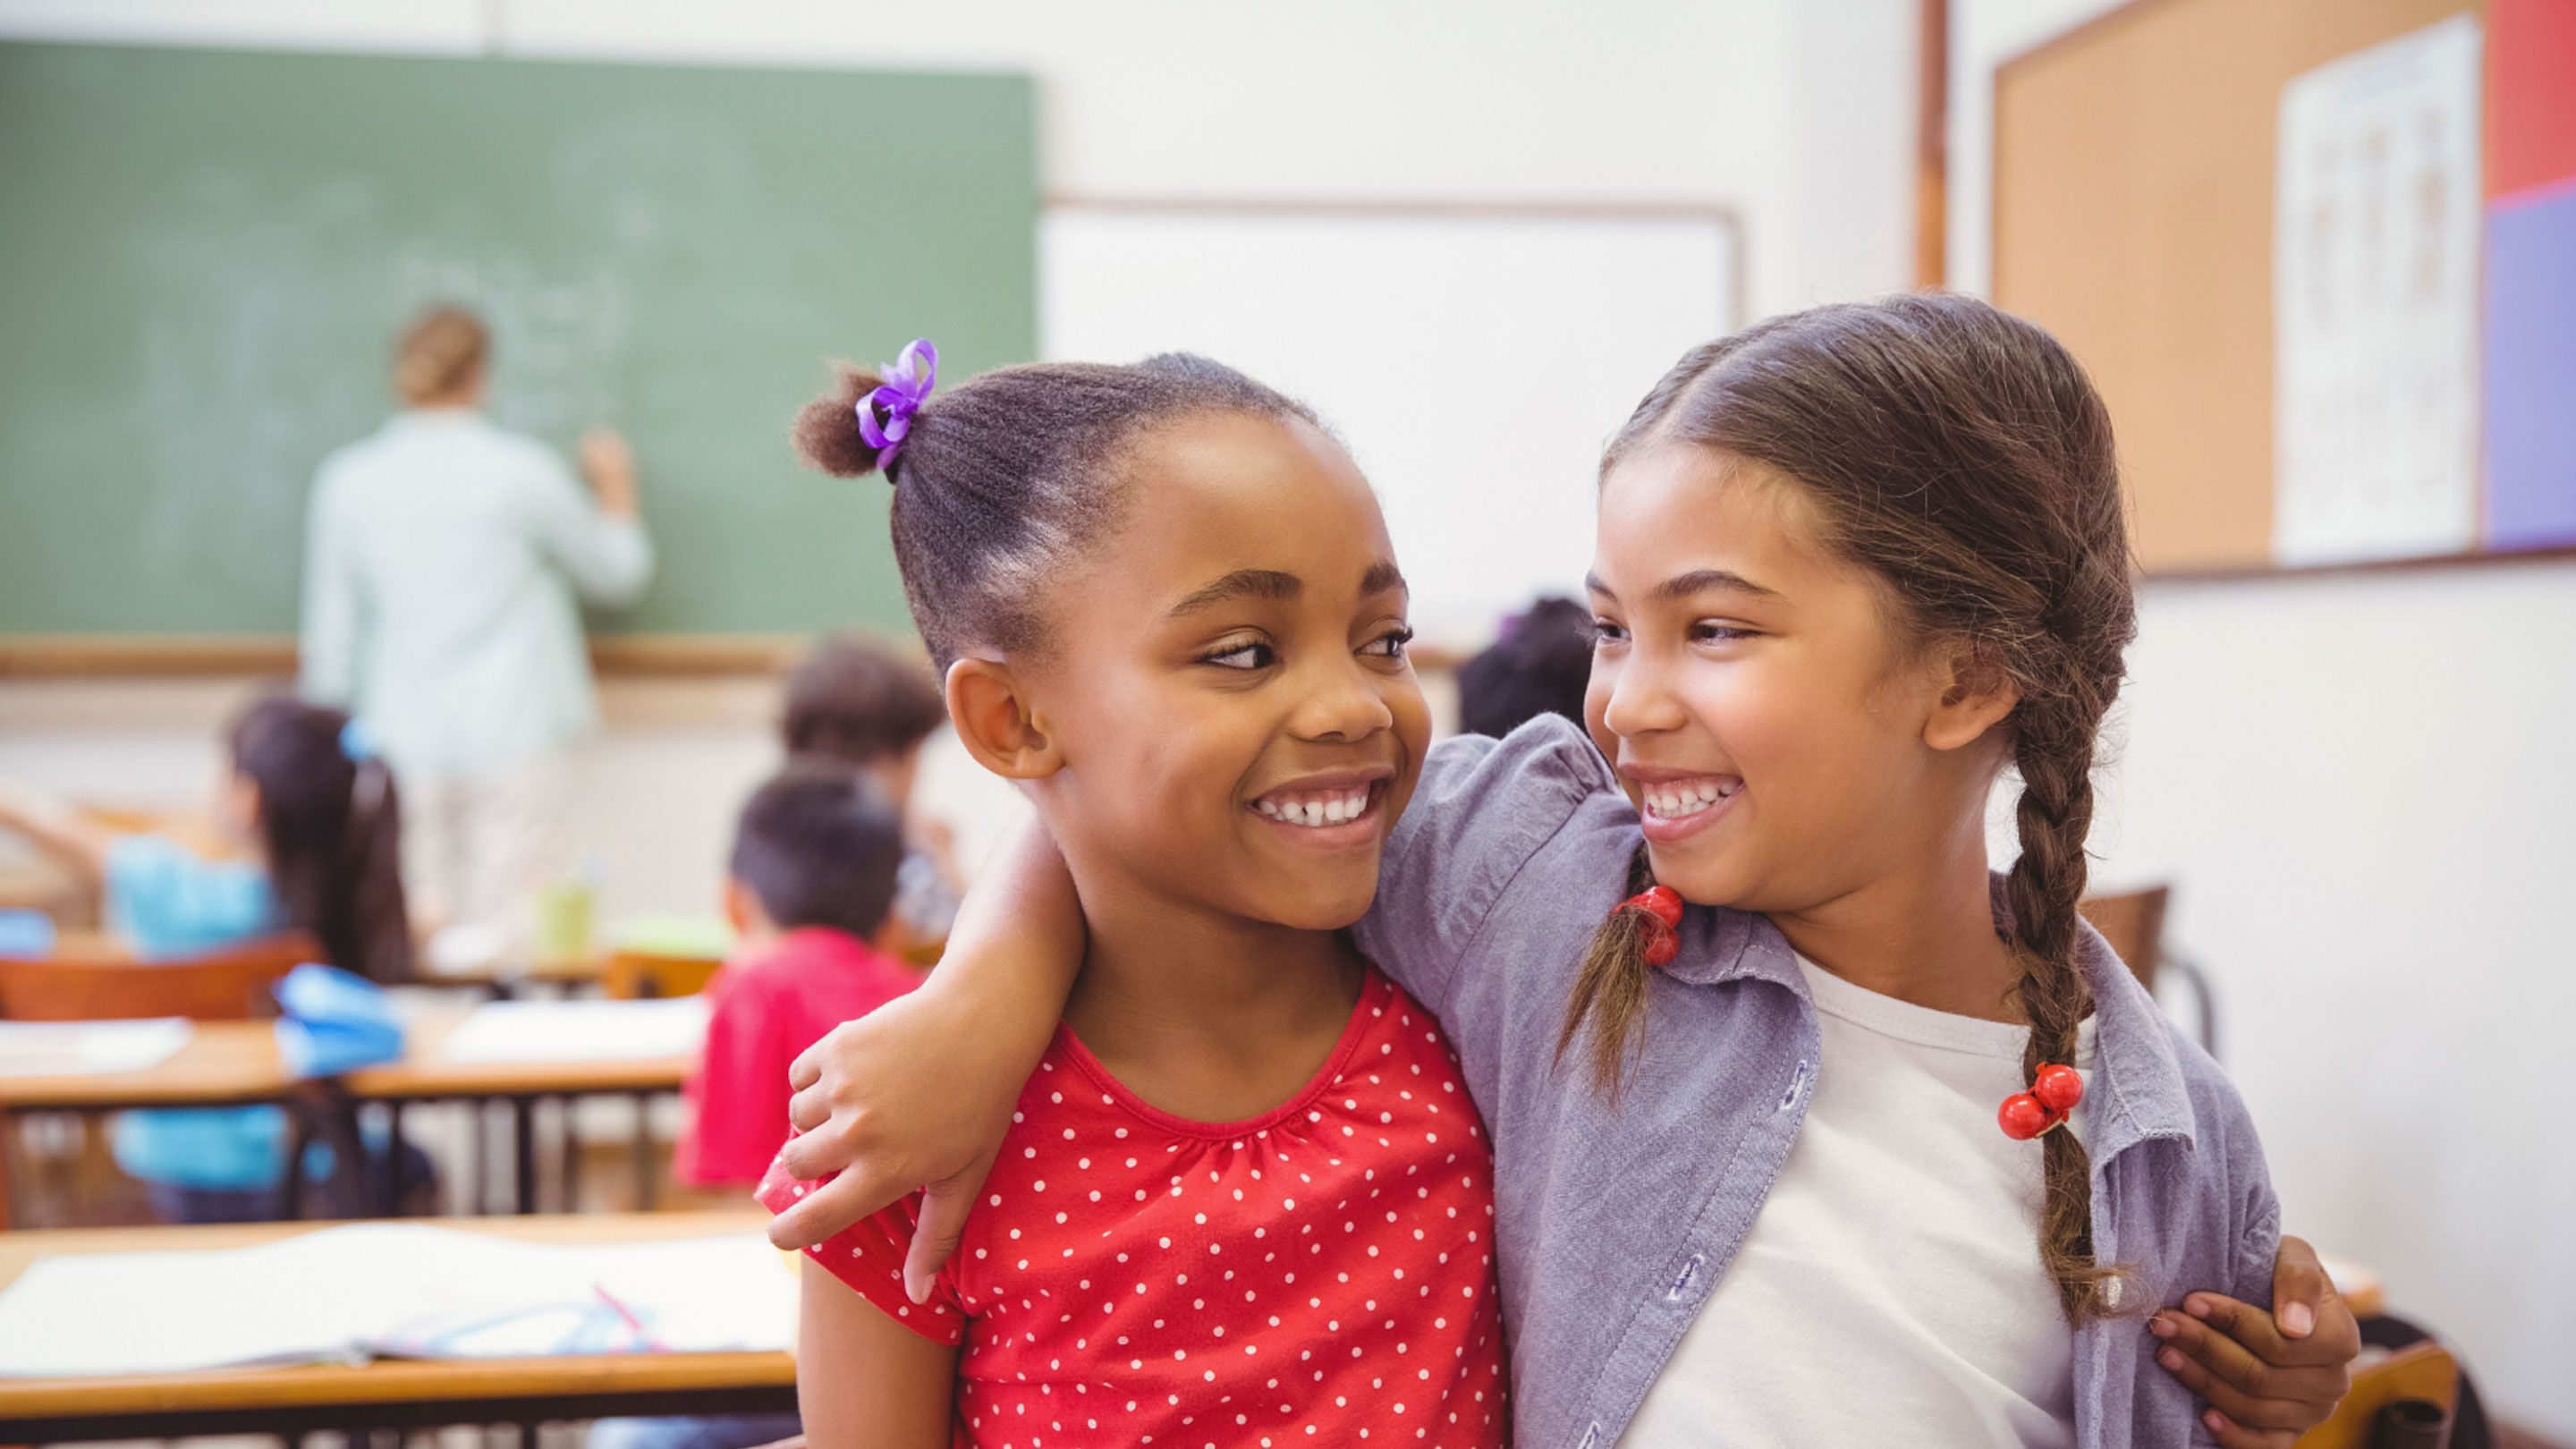 photo of two students smiling at each other in a classroom